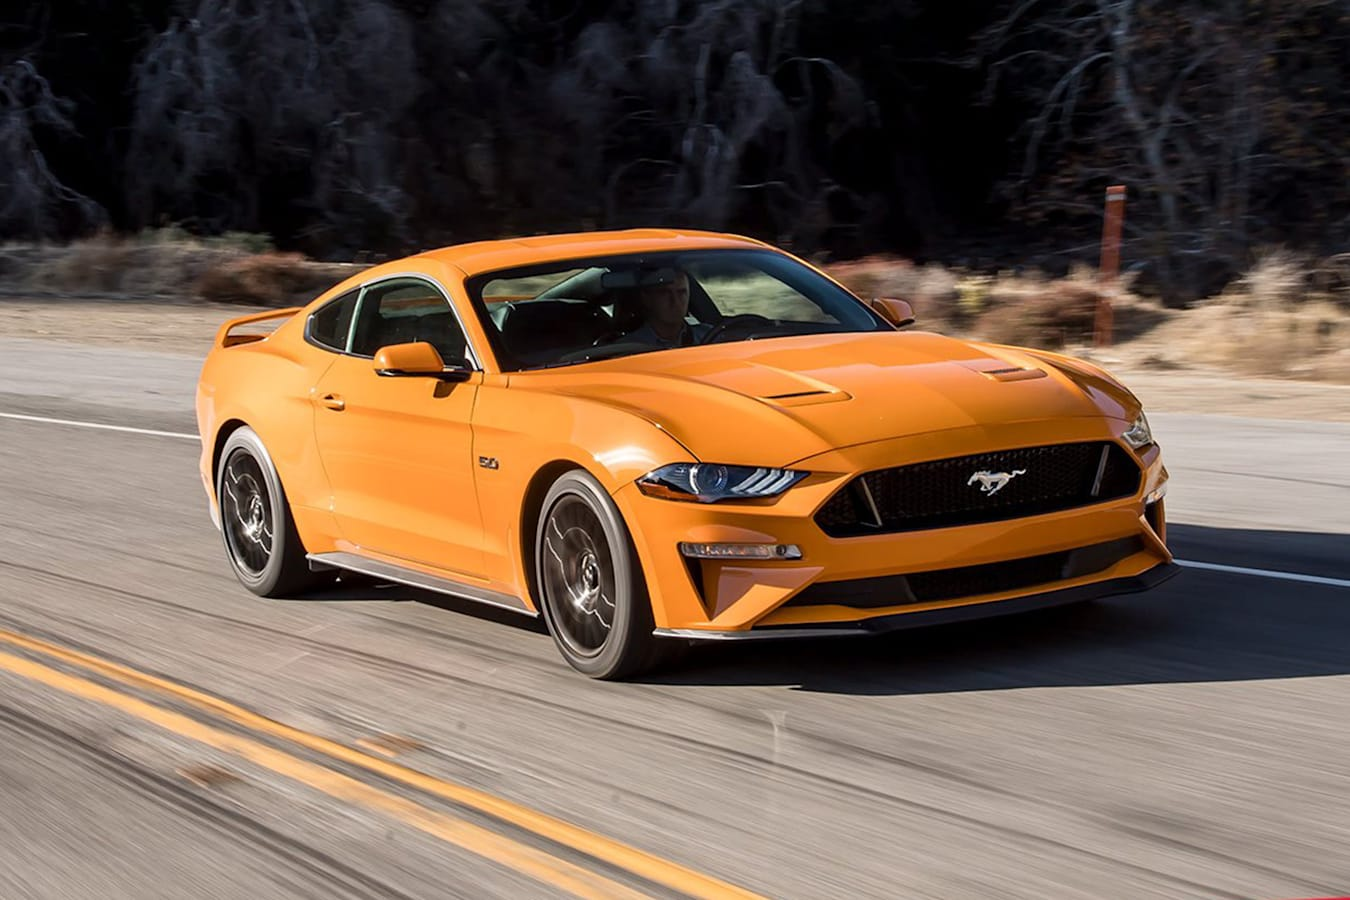 Ford Mustang Gt Rolling Jpg